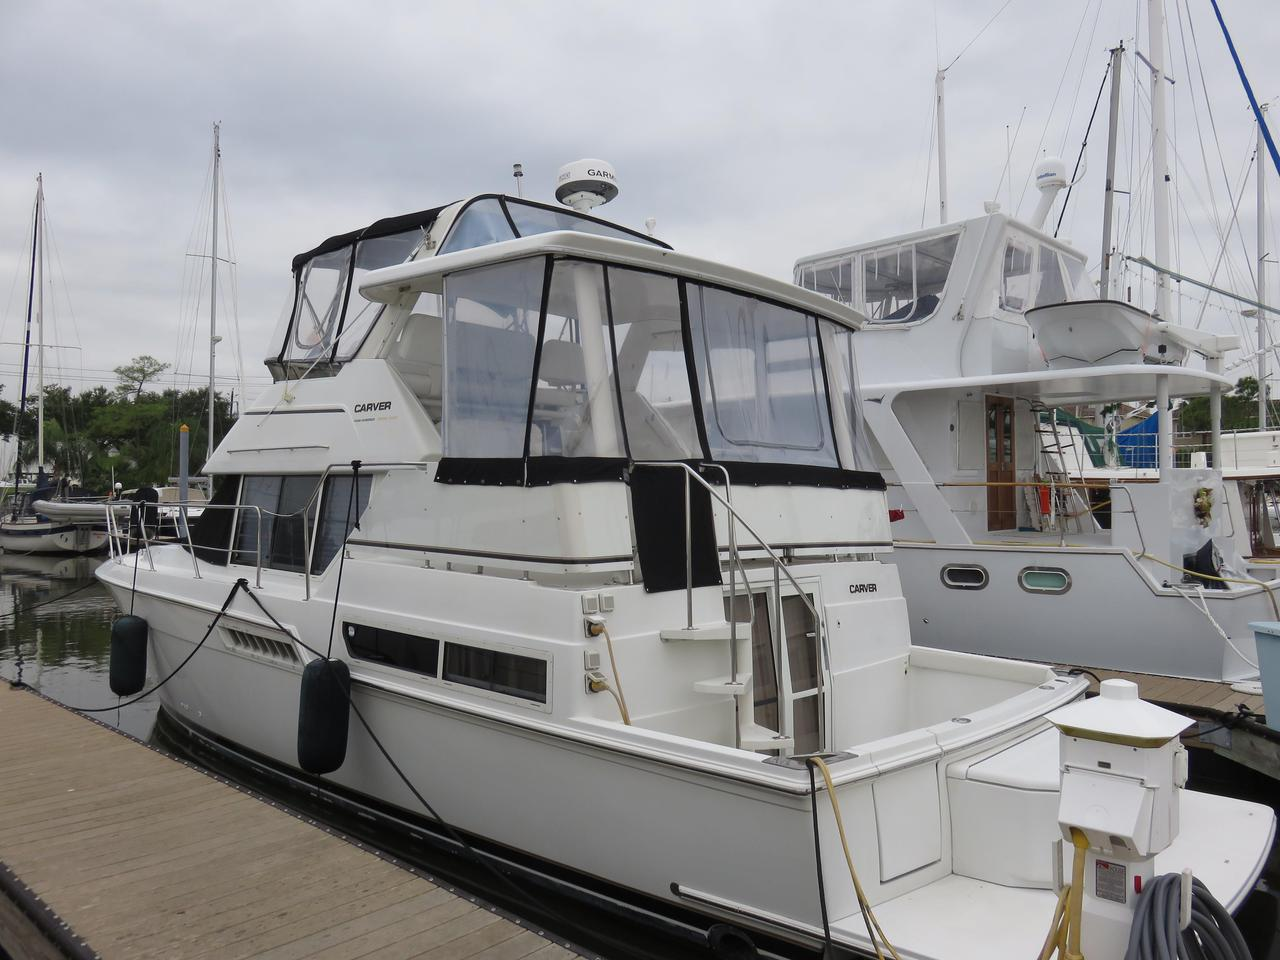 1997 Used Carver 400 Cockpit Motor Yacht Motor Yacht For